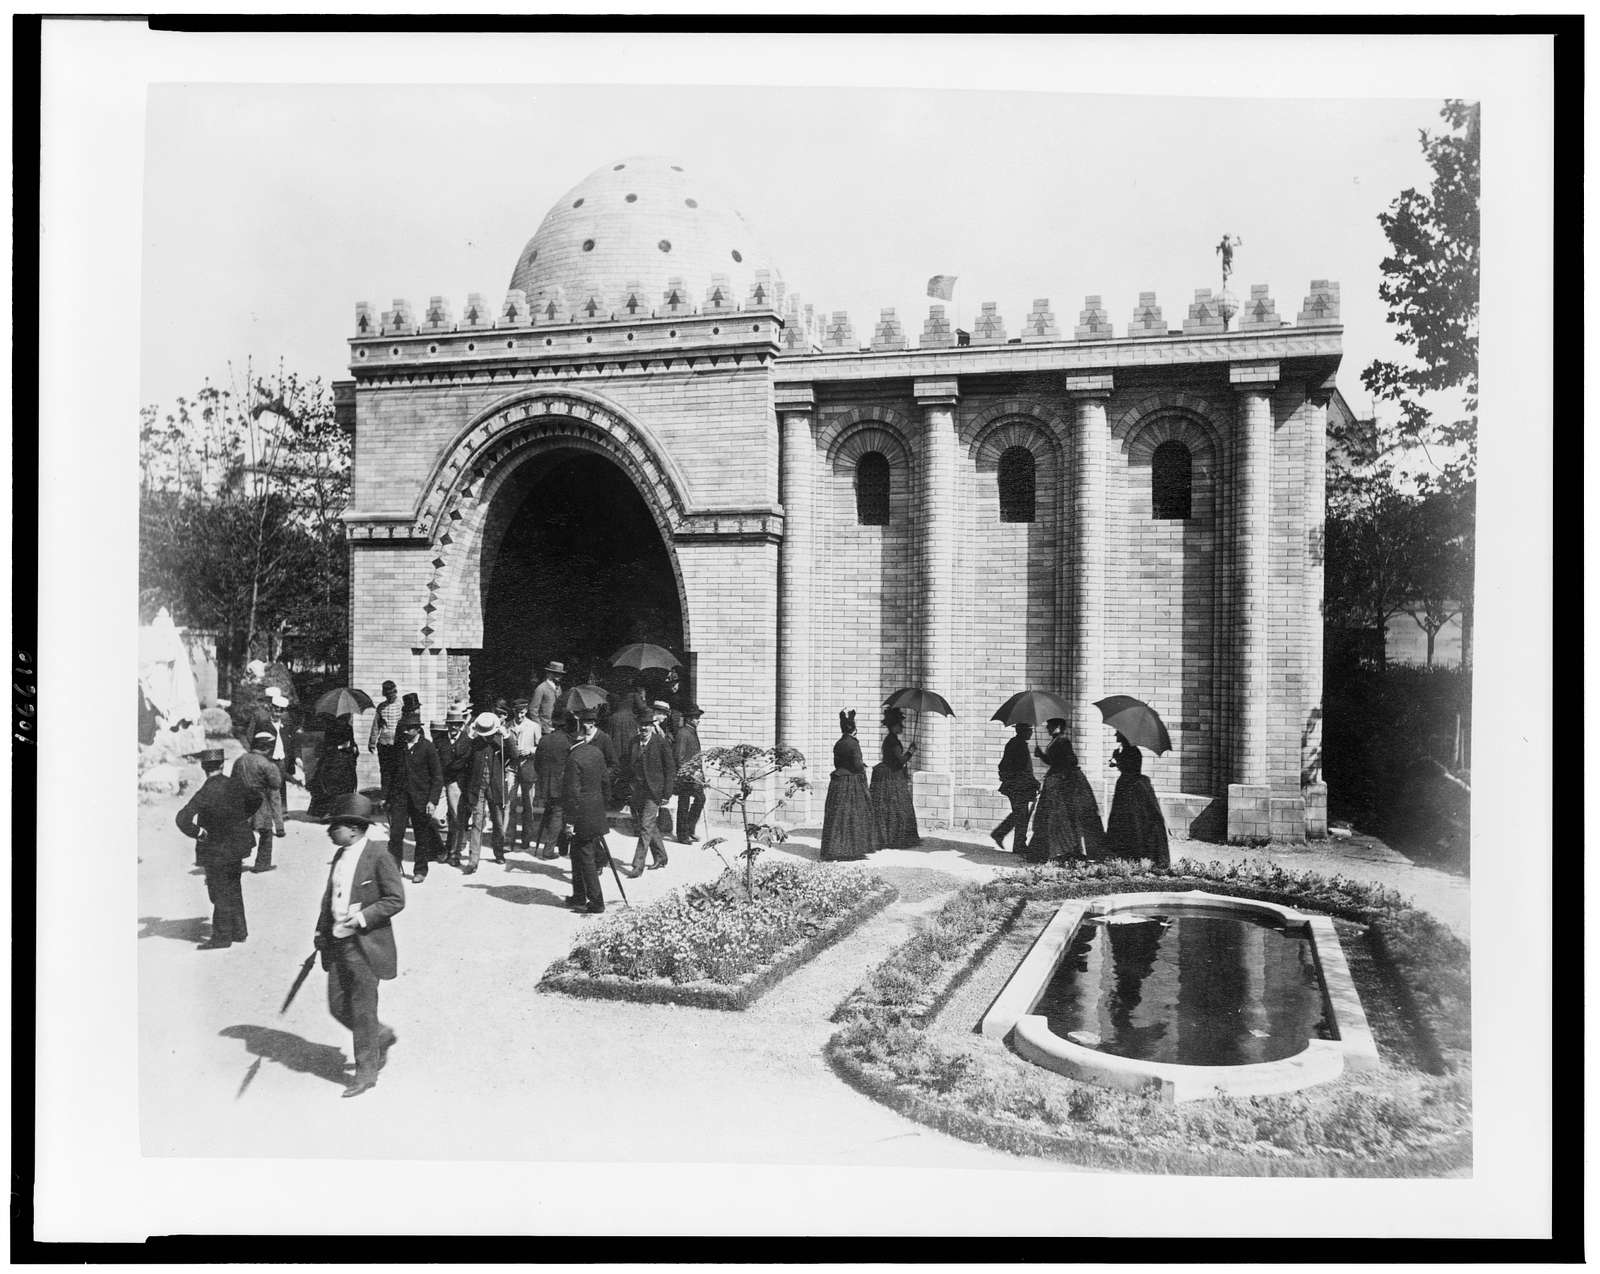 [Persian house in the History of Habitation exhibit, Paris Exposition, 1889]